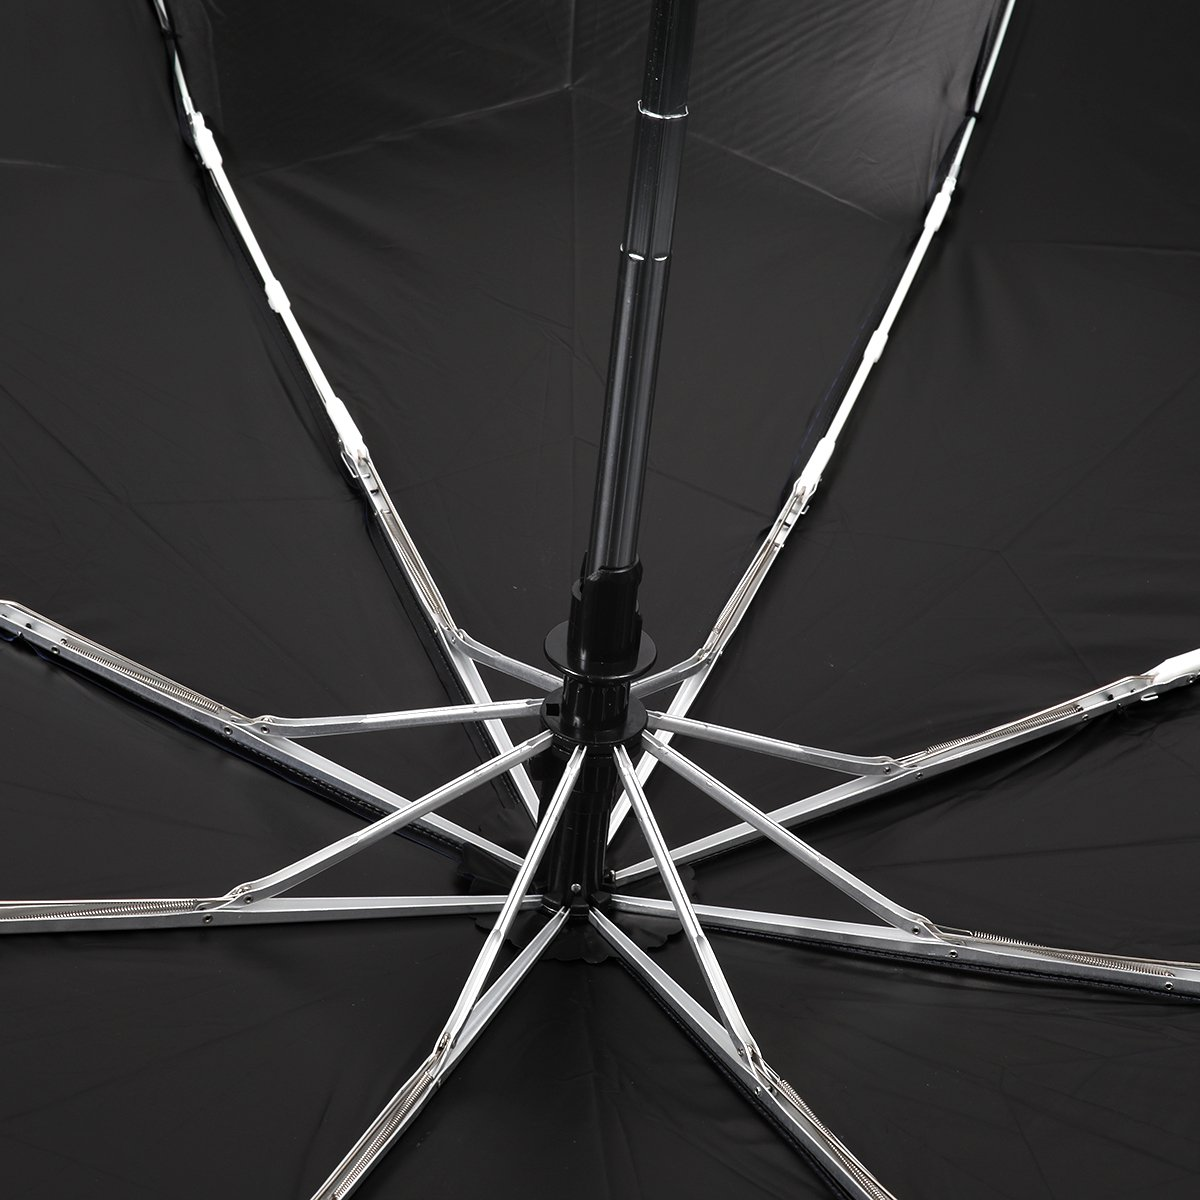 588K UV AUTOMATIC FOLDING UMBRELLA 詳細画像4